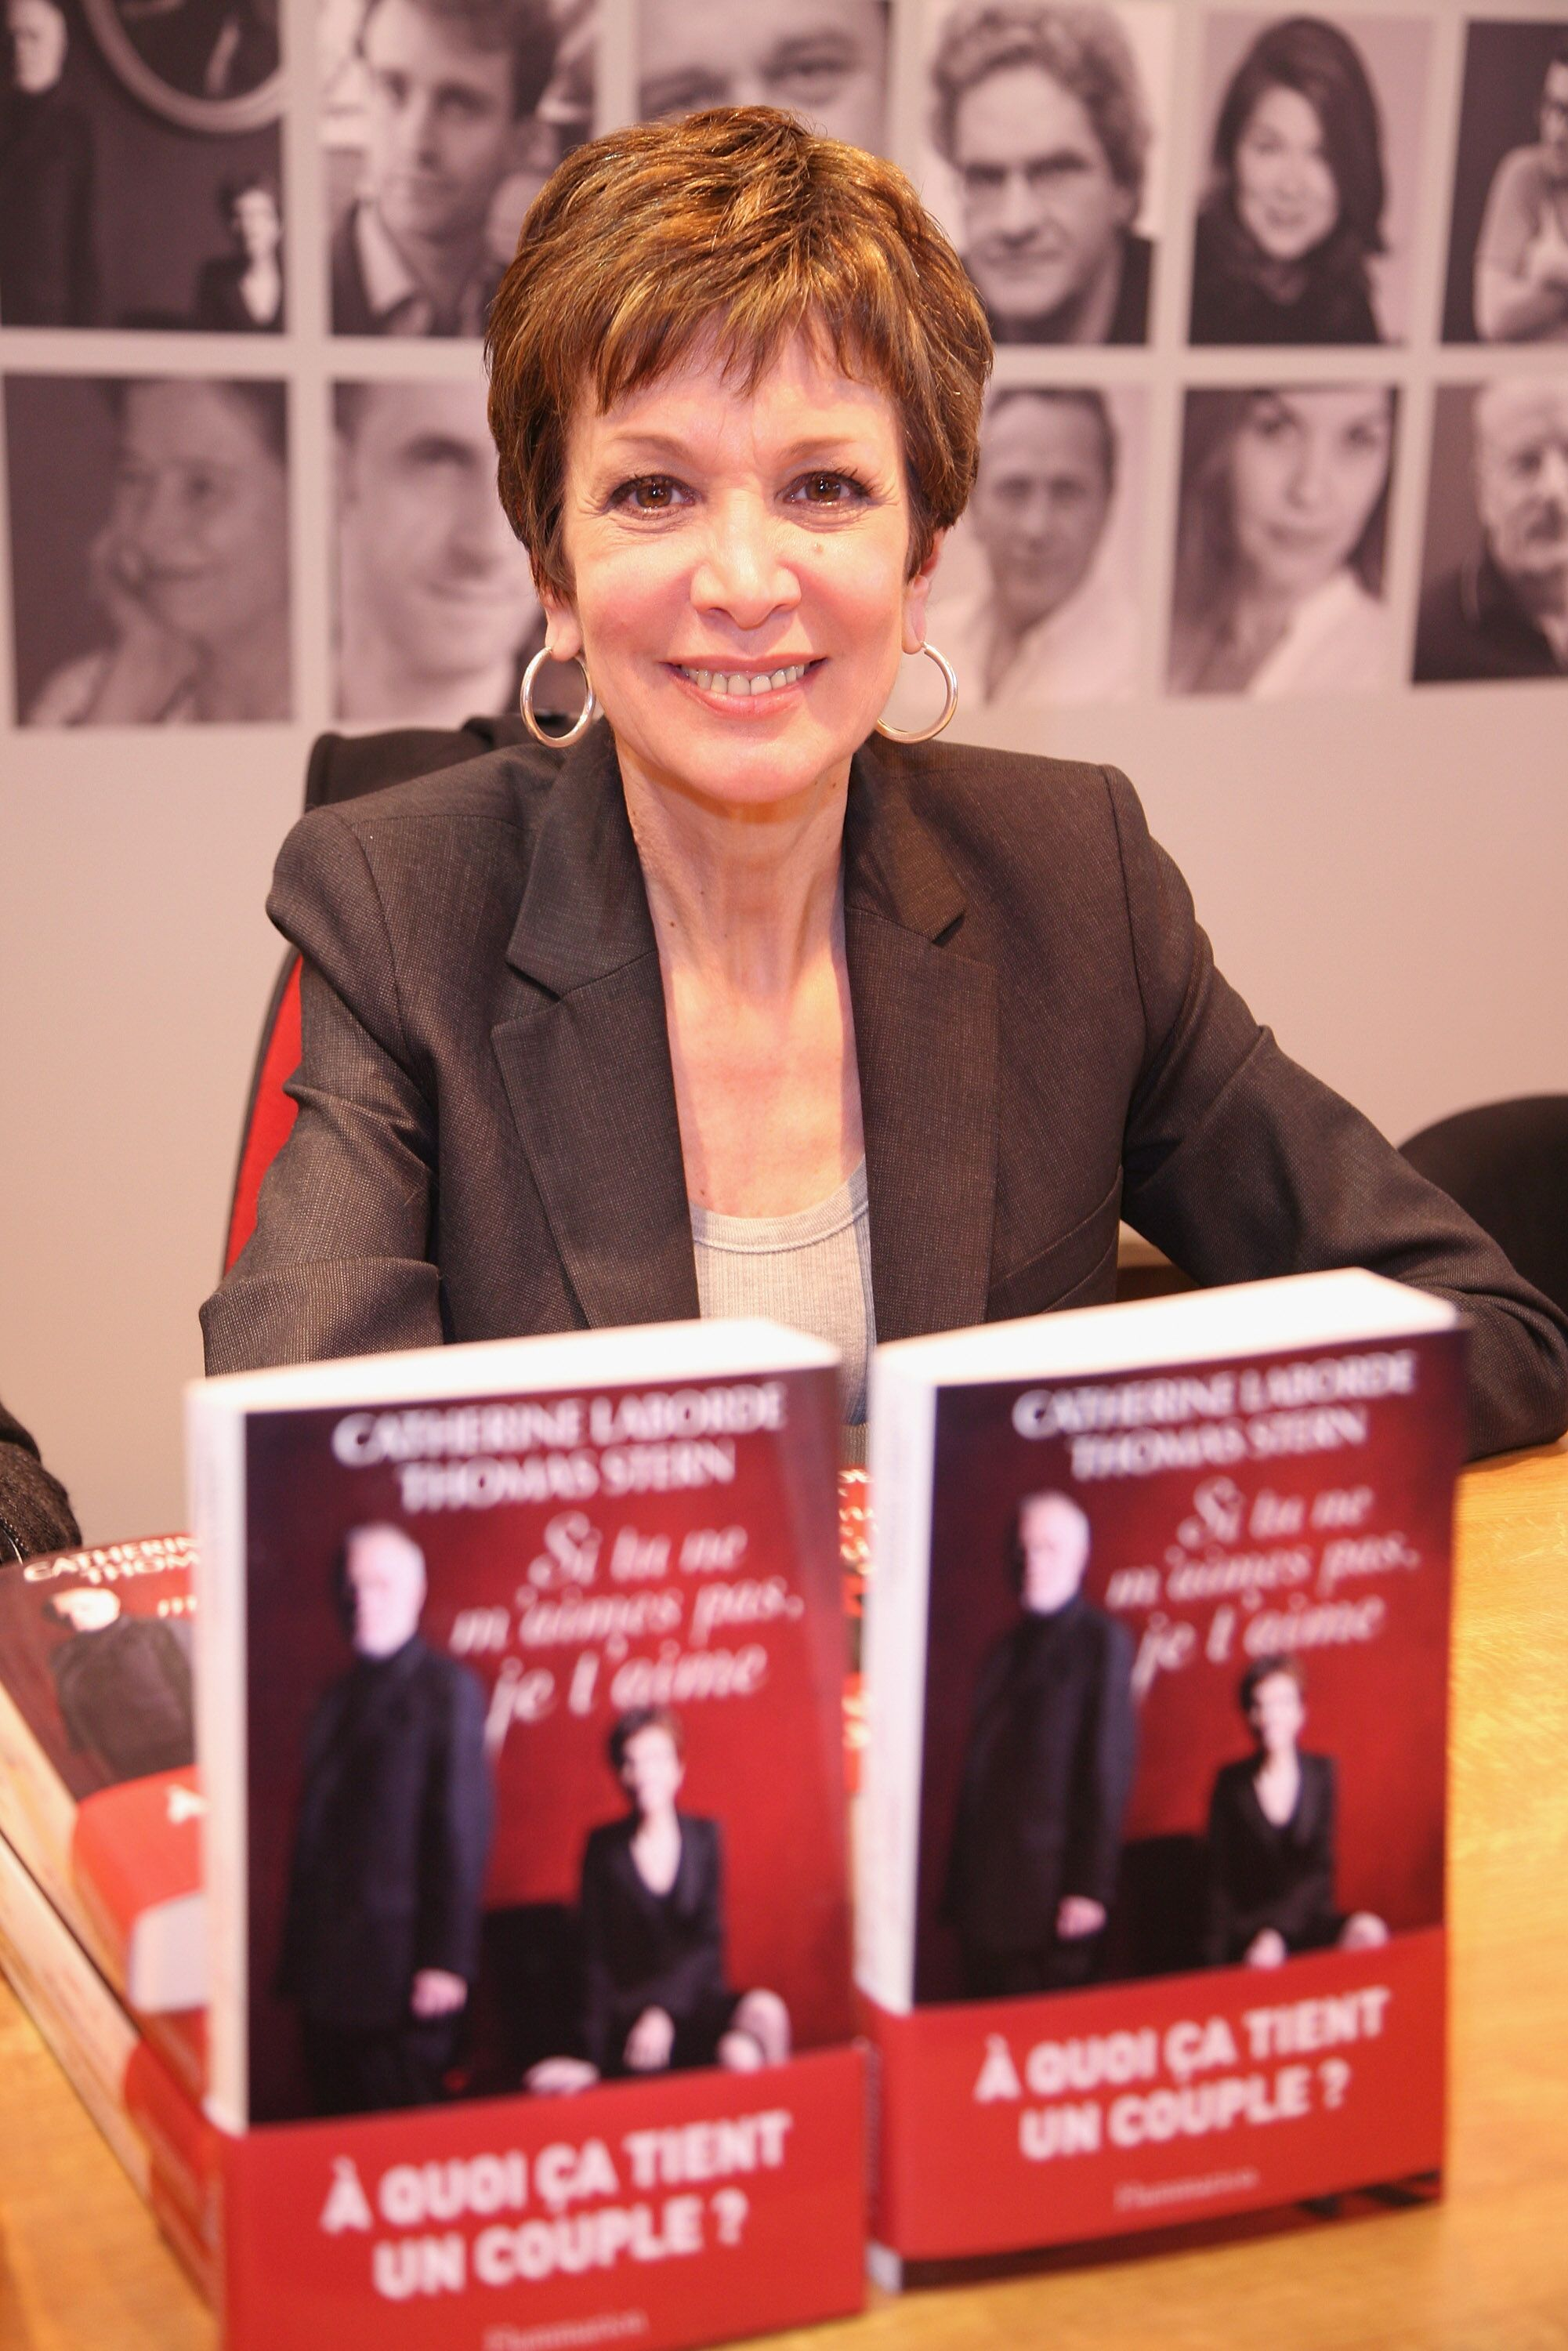 Catherine Laborde signe des exemplaires de son livre au 30e salon du livre de la Porte de Versailles le 27 mars 2010 à Paris, France. | Photo : Getty Images